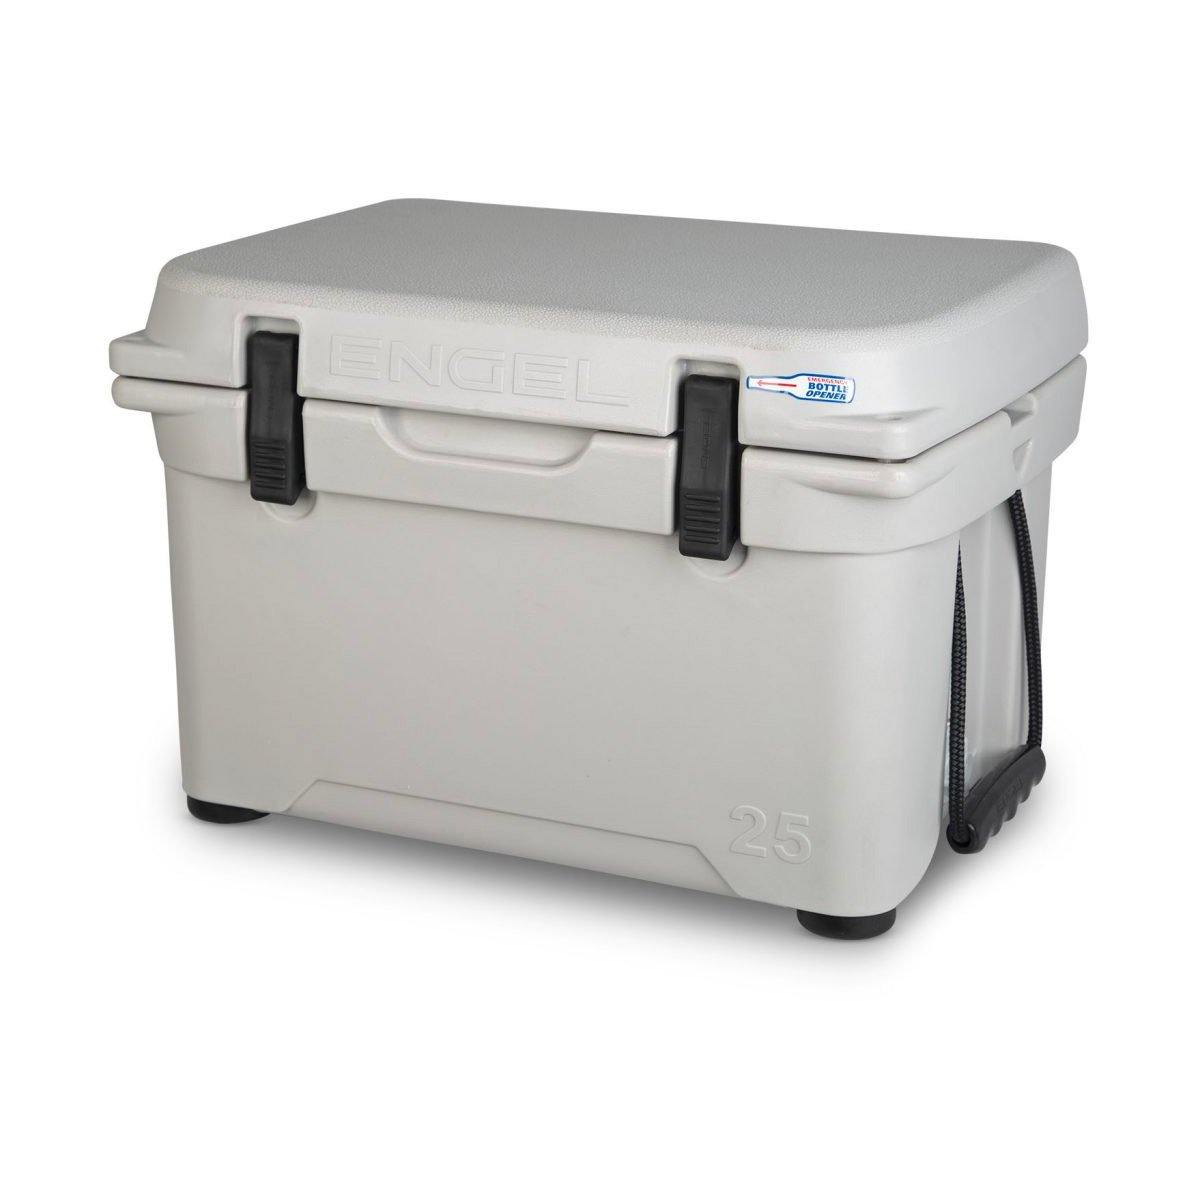 Engel 25 Hard Cooler